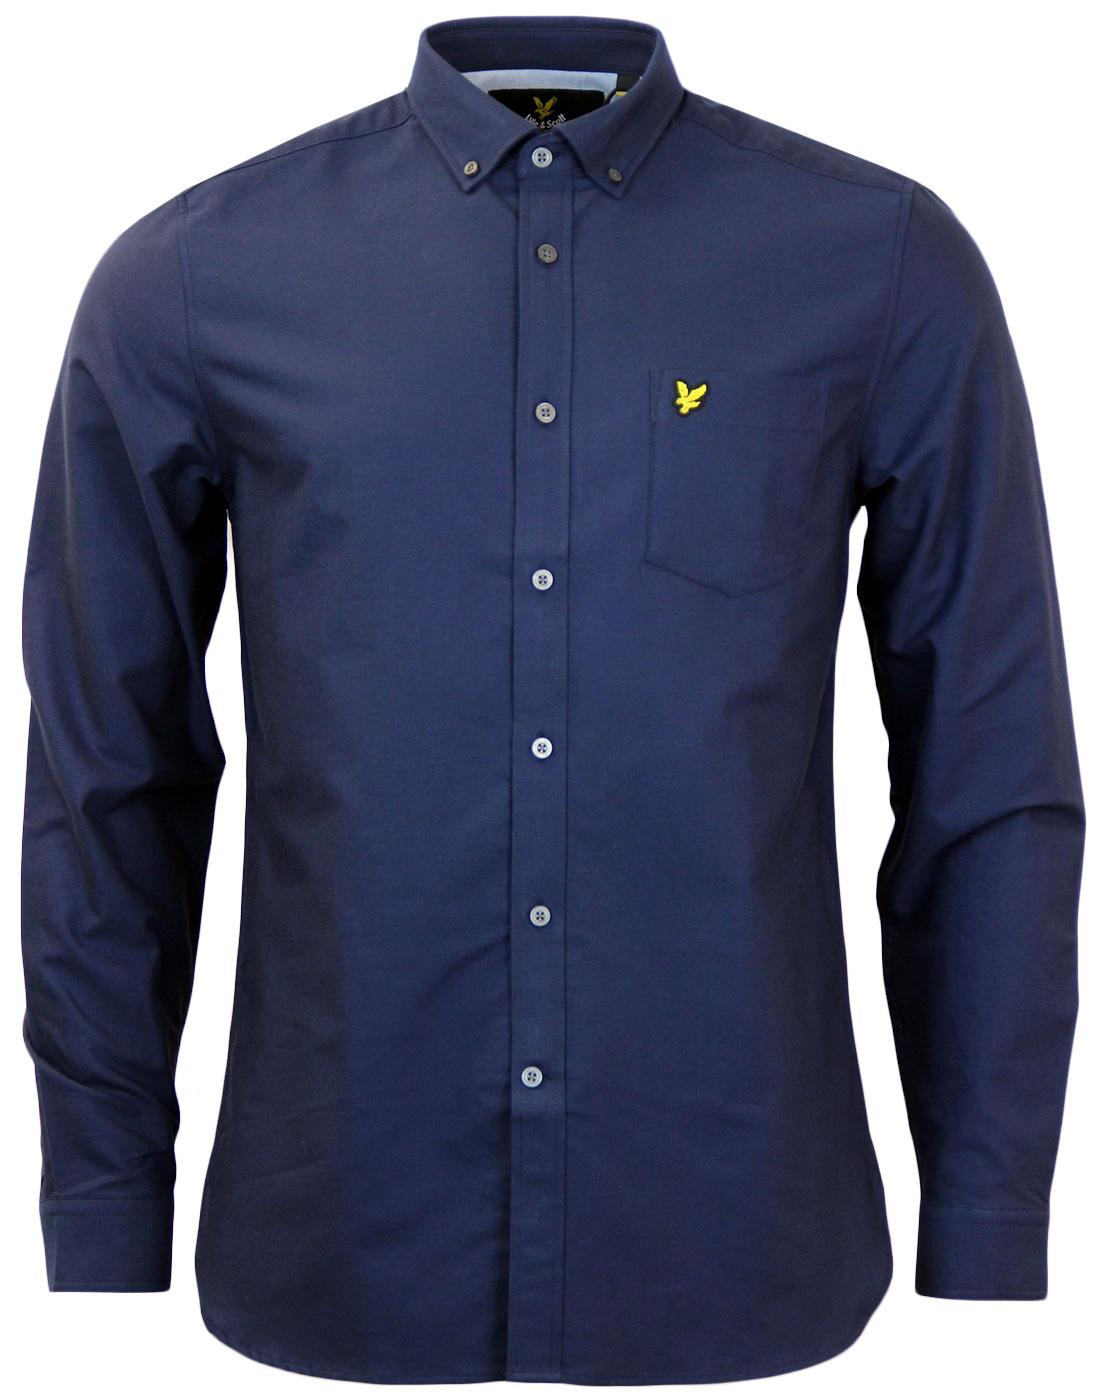 LYLE & SCOTT Retro Mod Button Down Oxford Shirt